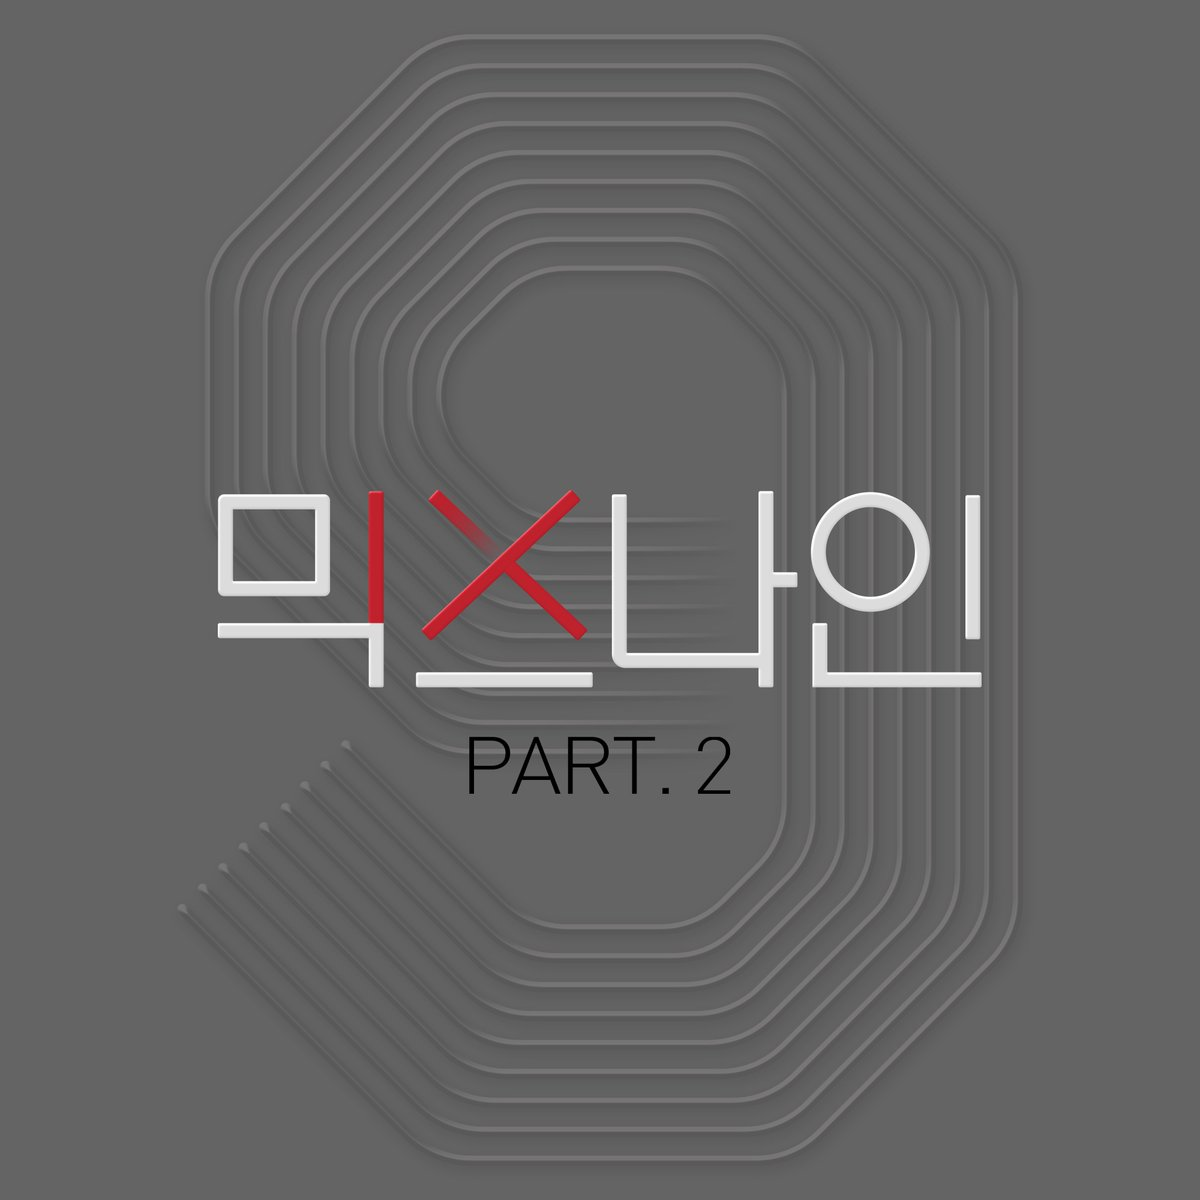 [MIXNINE - 'TO MYSELF'] Available on Apple Music @ https://t.co/yvo98EQP2V #믹스나인 #MIXNINE #PART2 #TOMYSELF #SORI #YG